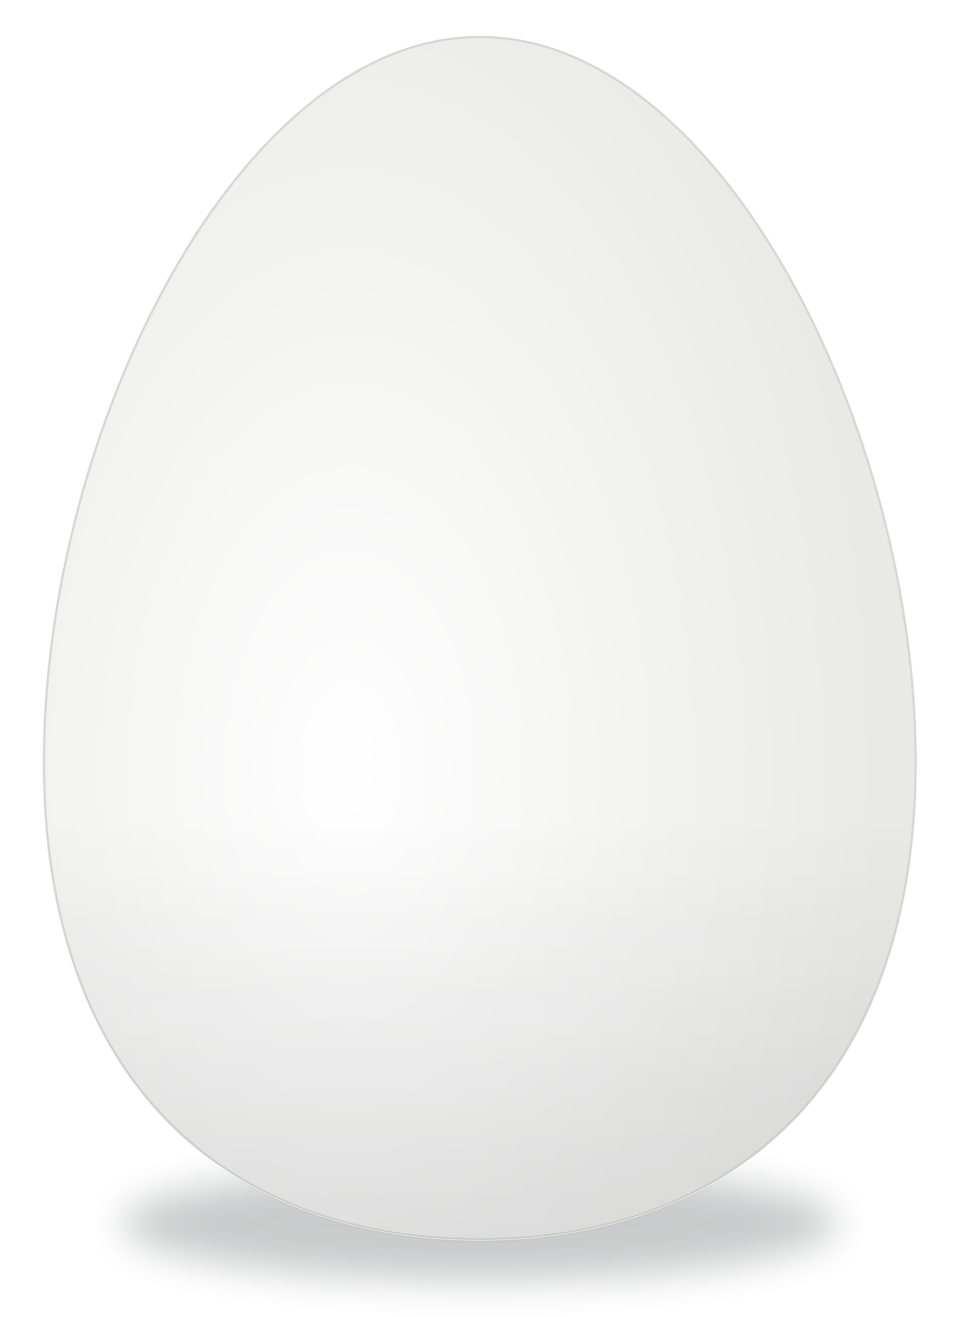 Egg clipart clear background.  collection of no